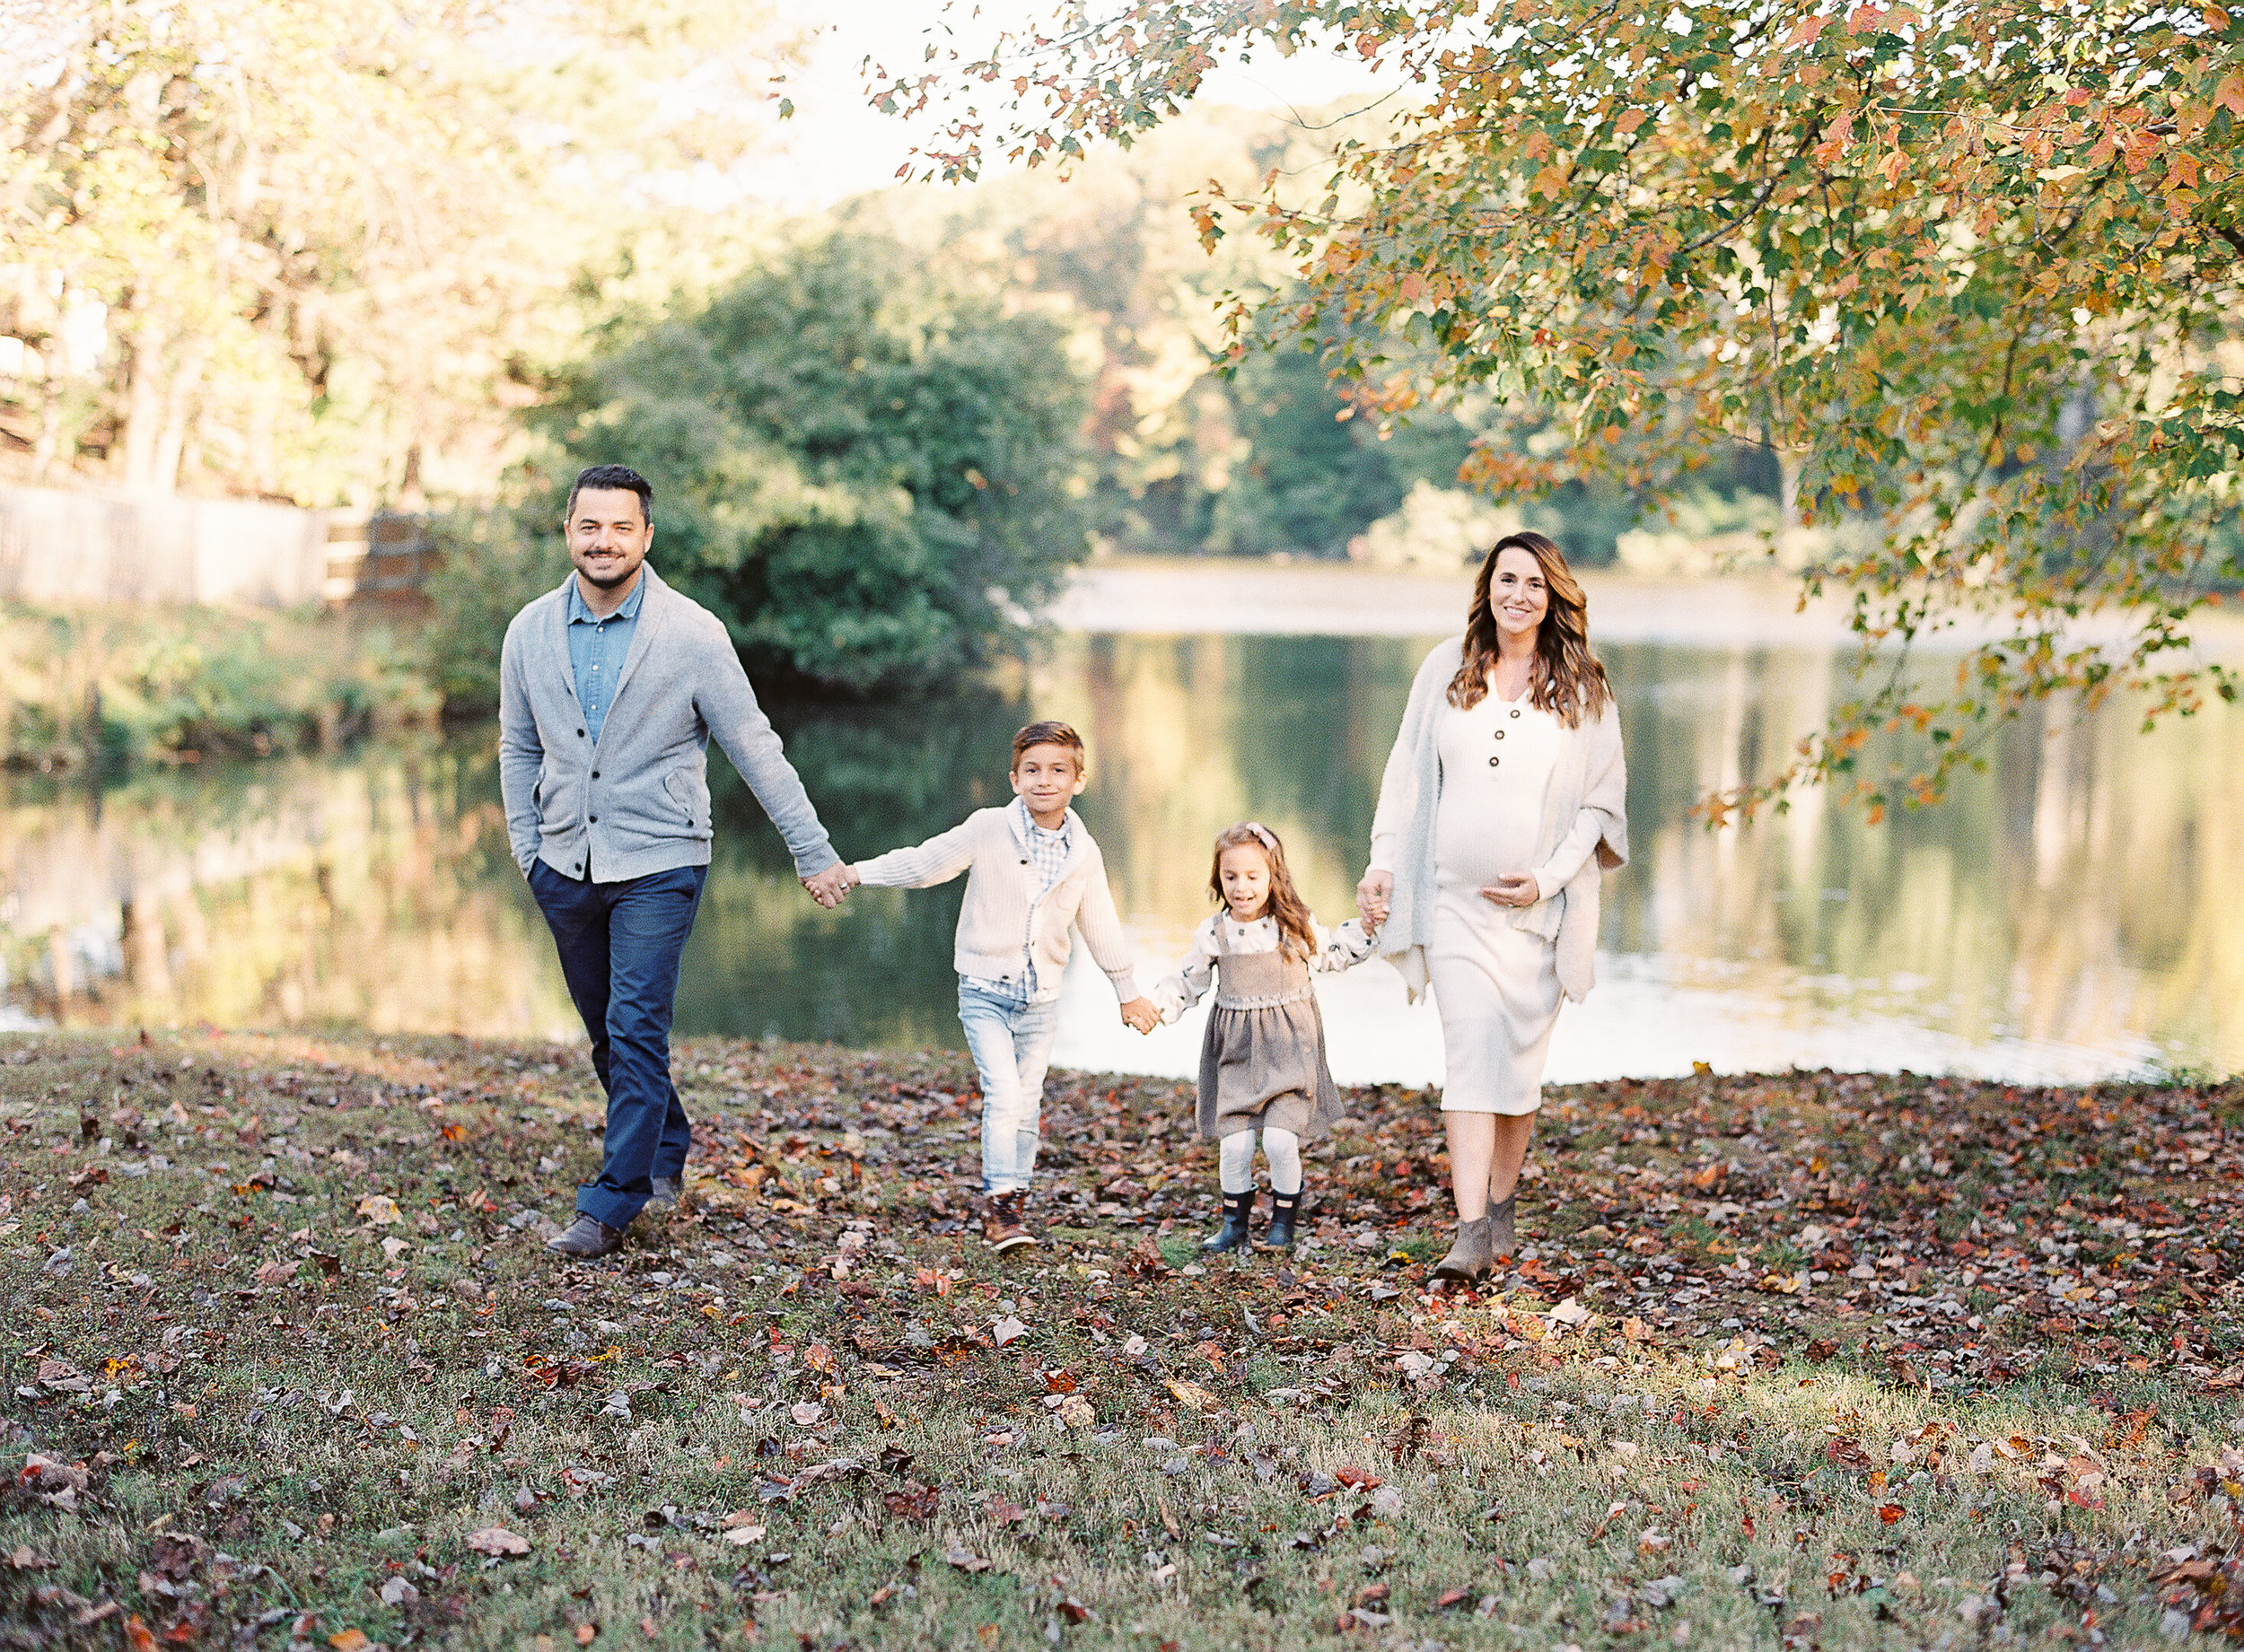 atlanta-georgia-family-photographer-fine-art-film-hannah-forsberg-45.jpg